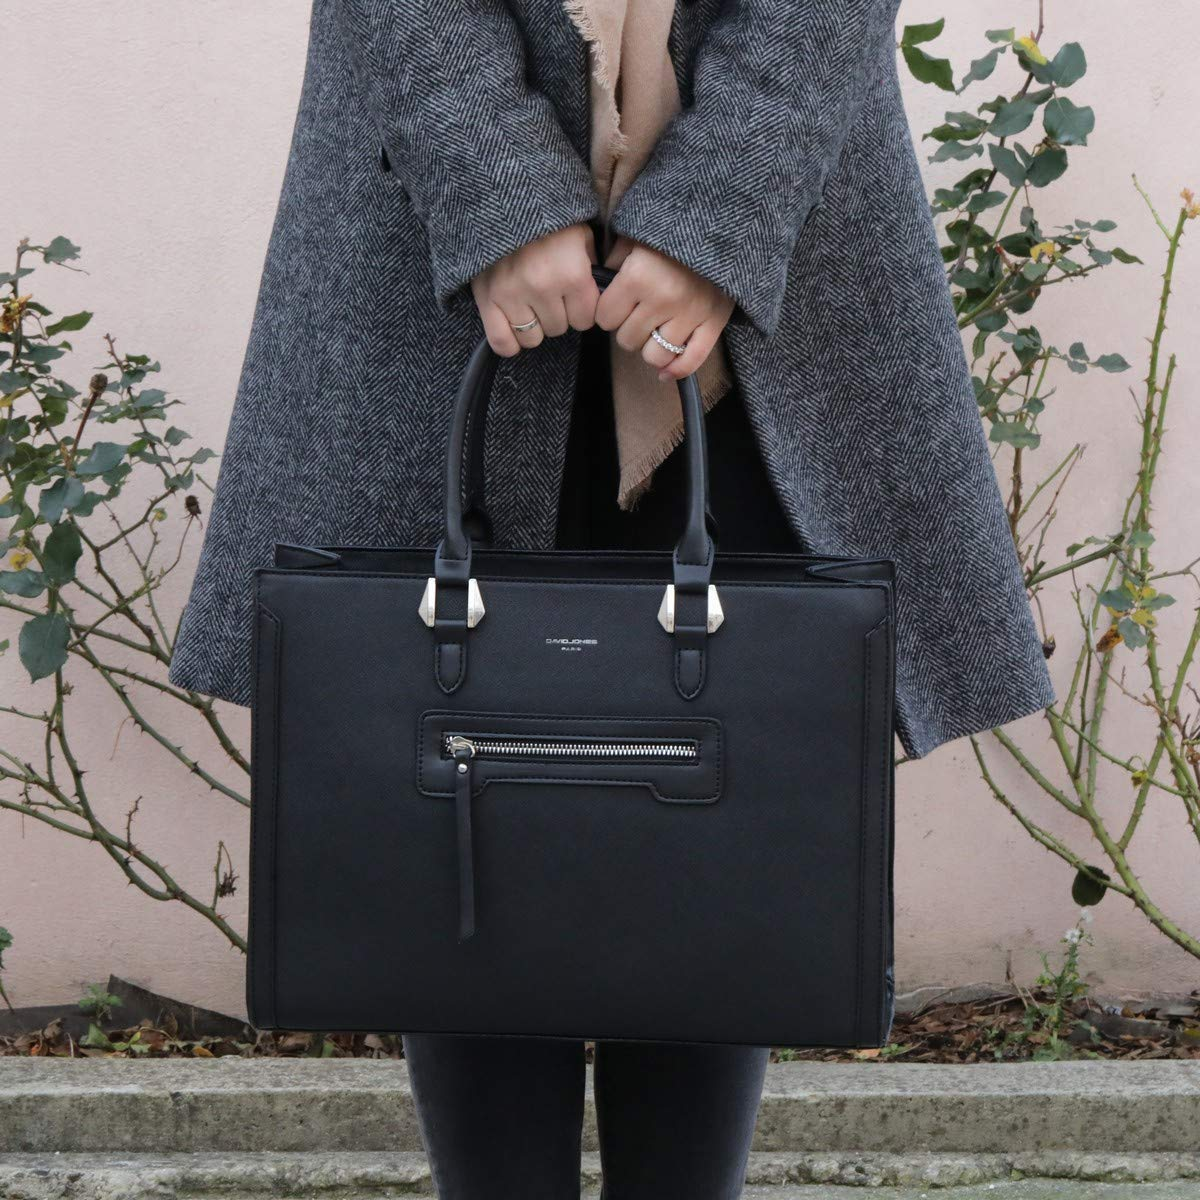 Grand Sac /à Main Femme Capacit/é Moyenne Cabas Fourre-Tout Cuir PU Rigide Gris David Jones Sac El/égant Ville Travail Poches Multiples Shopper Port/é Epaule Bandouli/ère Mode Chic